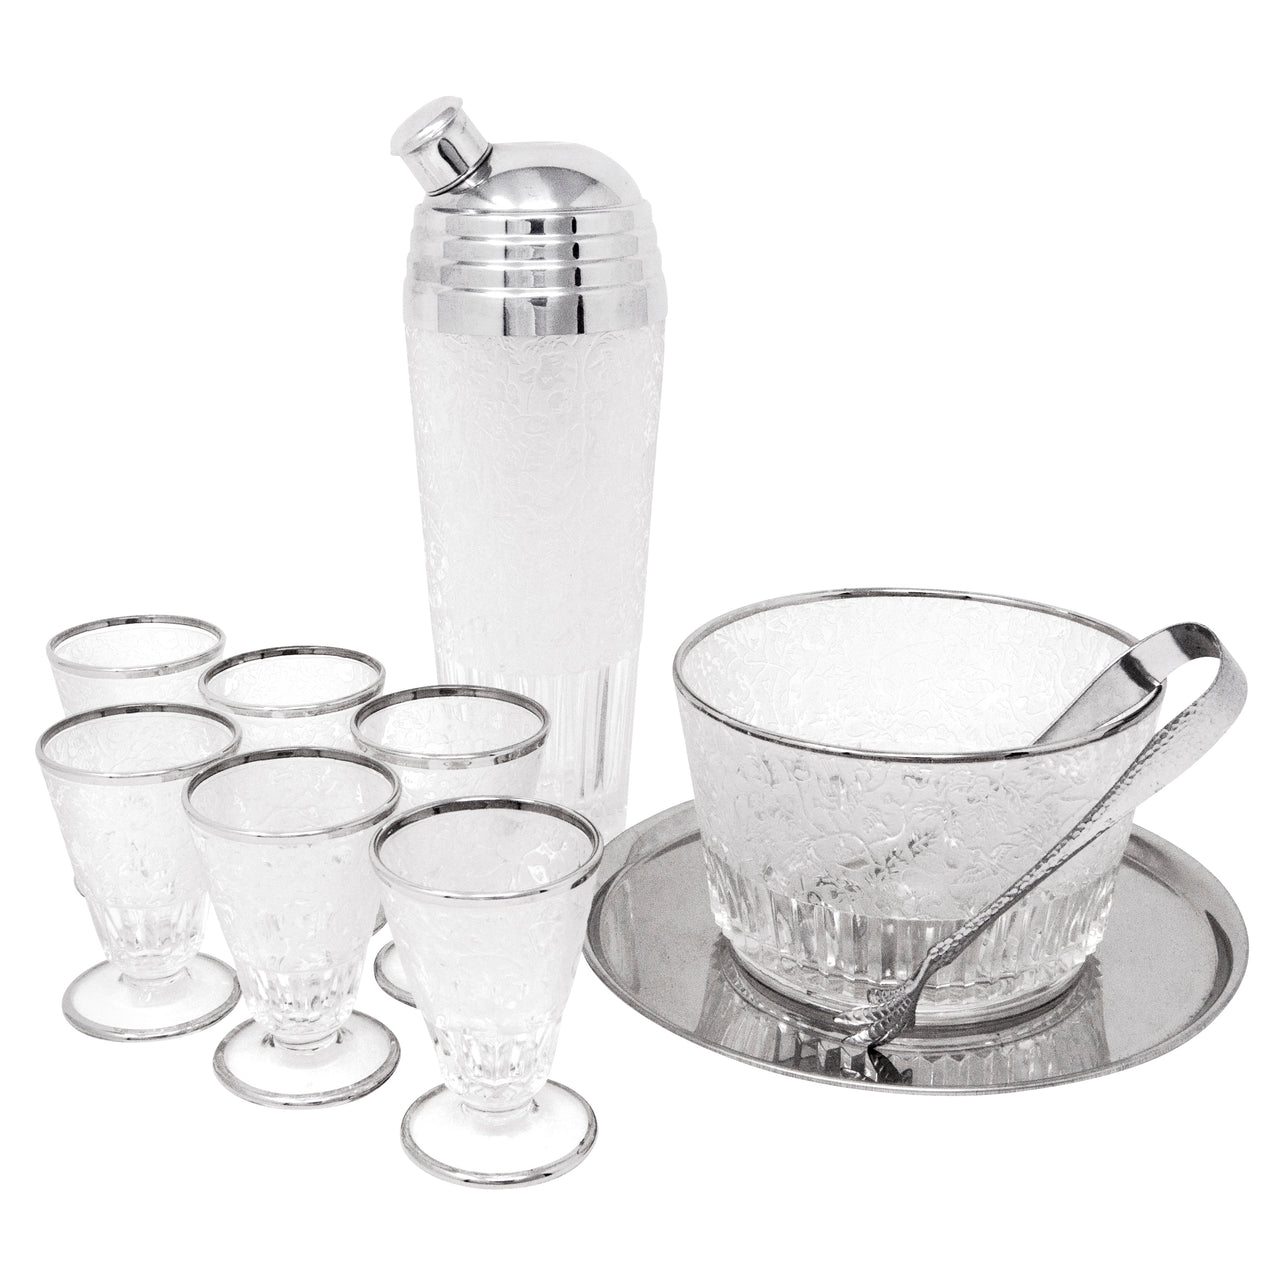 Vintage Paden City Spring Orchard Cocktail Set | The Hour Shop